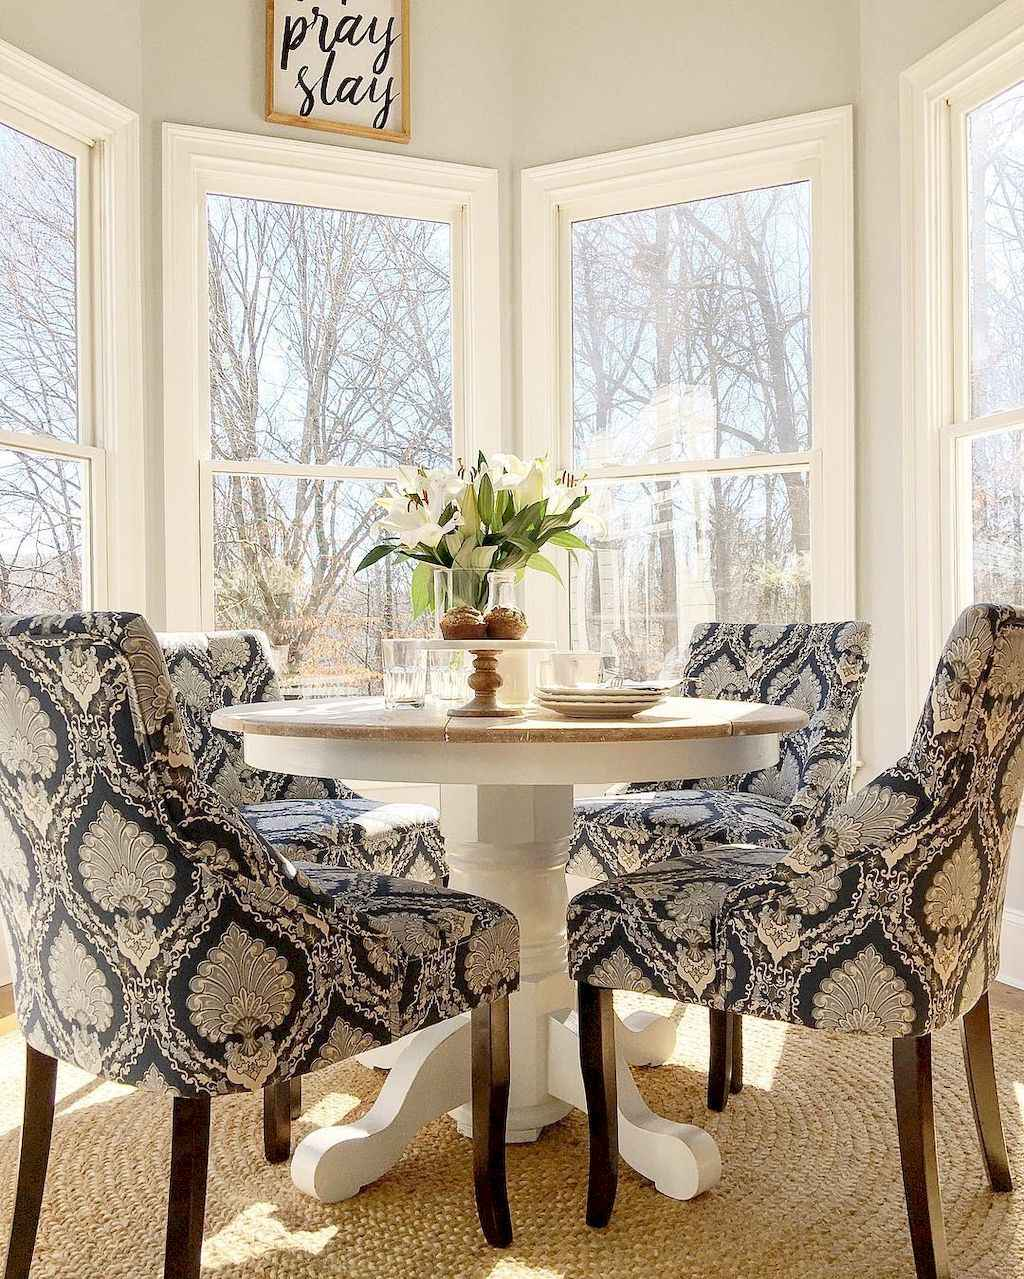 Clever small dining room ideas (25)